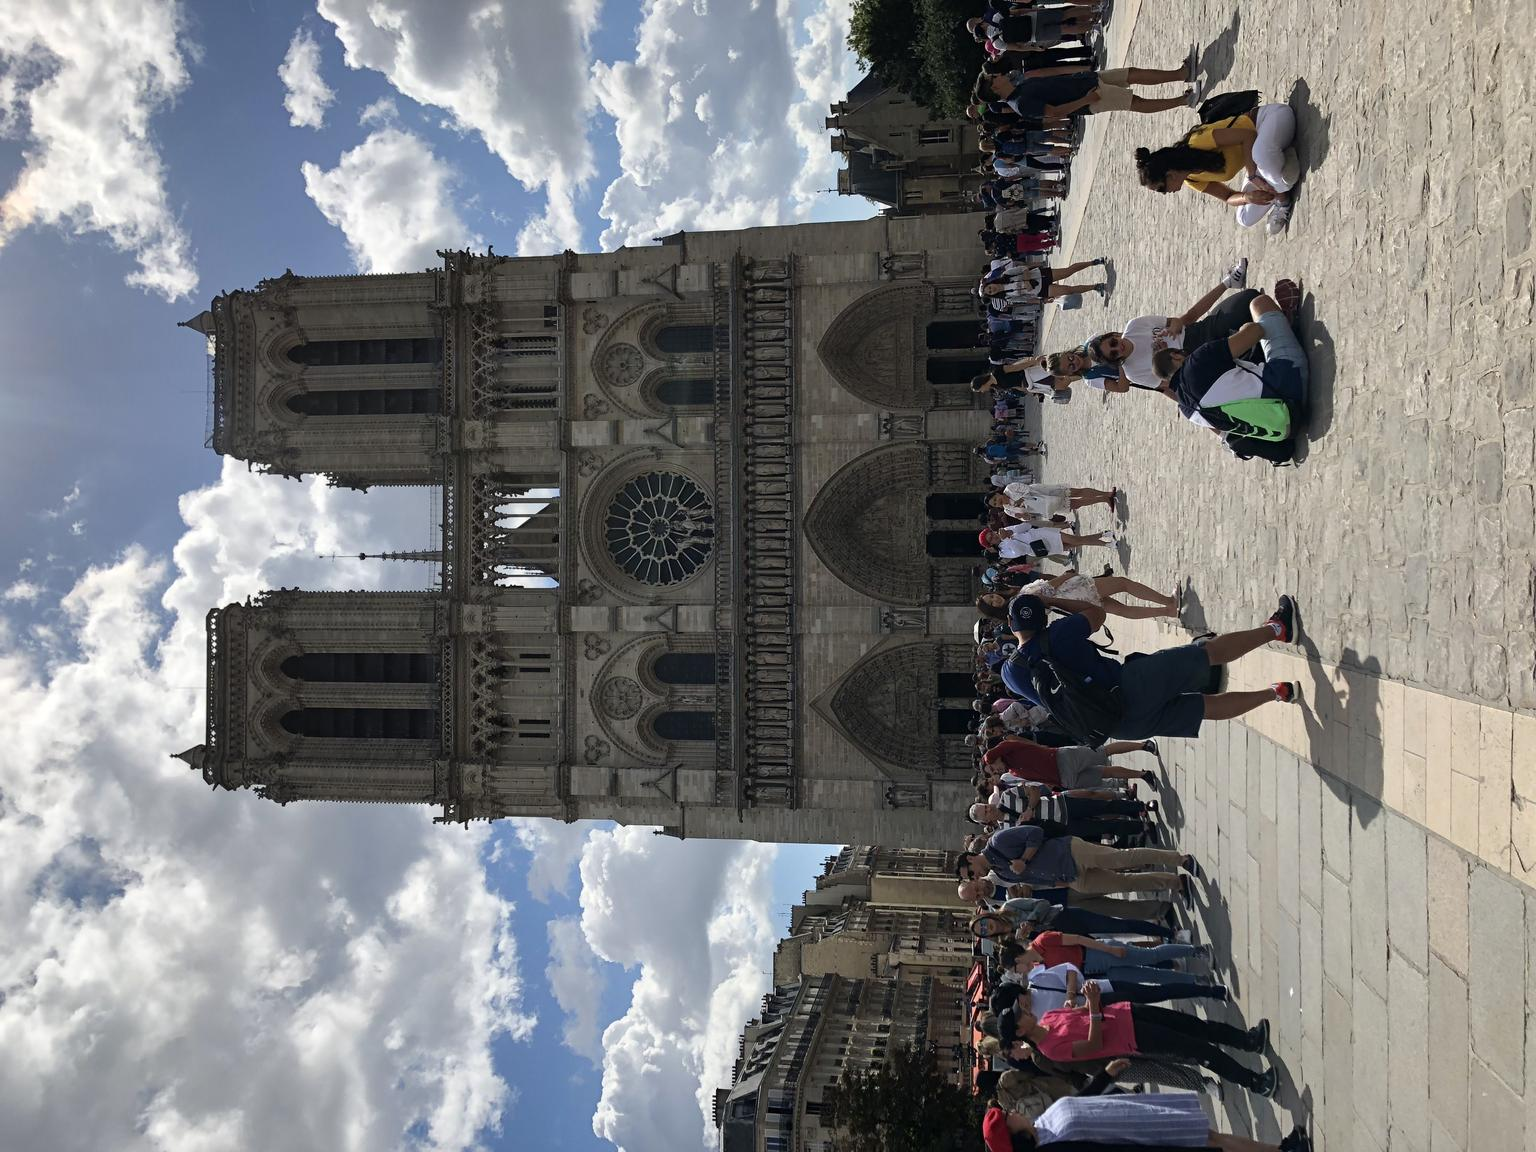 MORE PHOTOS, Paris in a Day: Montmartre, Eiffel Tower, Seine River Cruise & Optional Louvre